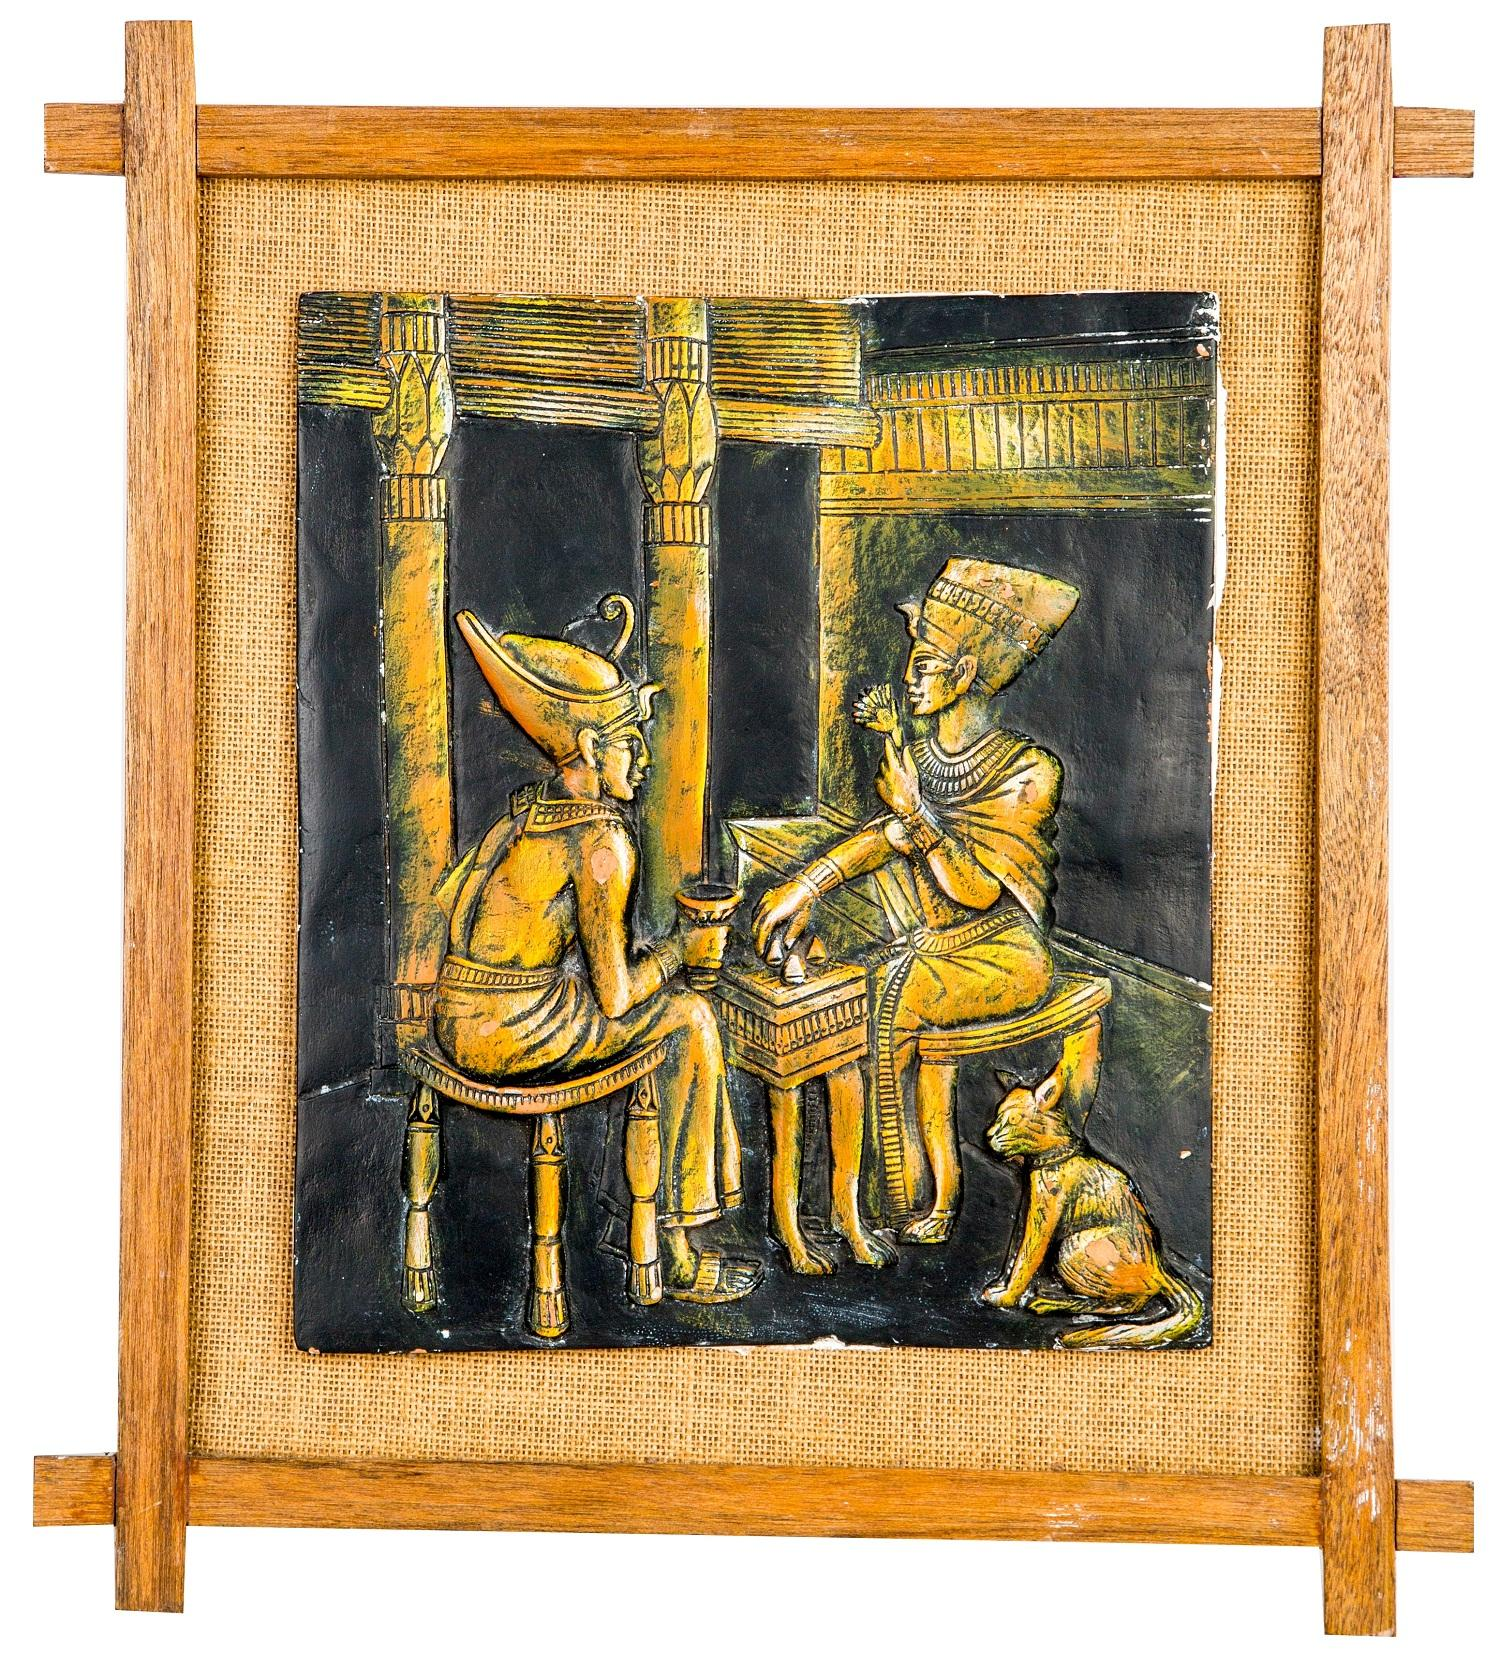 Mangala Art Egyption Jute Mural Work, Size:11x12, Color:Multi